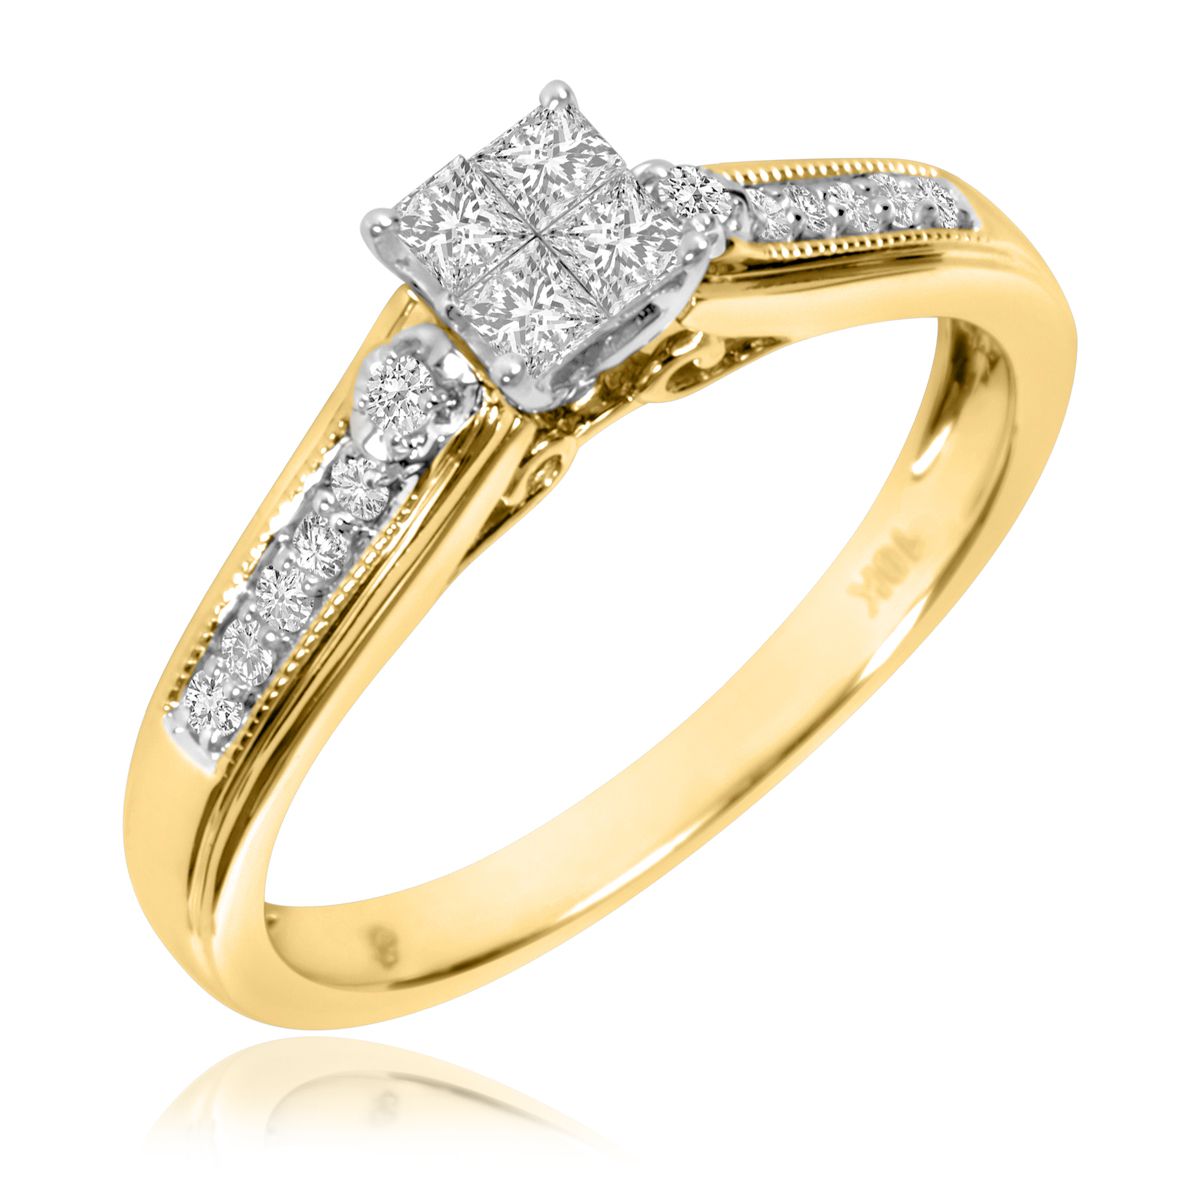 1/4 CT. T.W. Diamond Ladies' Engagement Ring 10K Yellow Gold